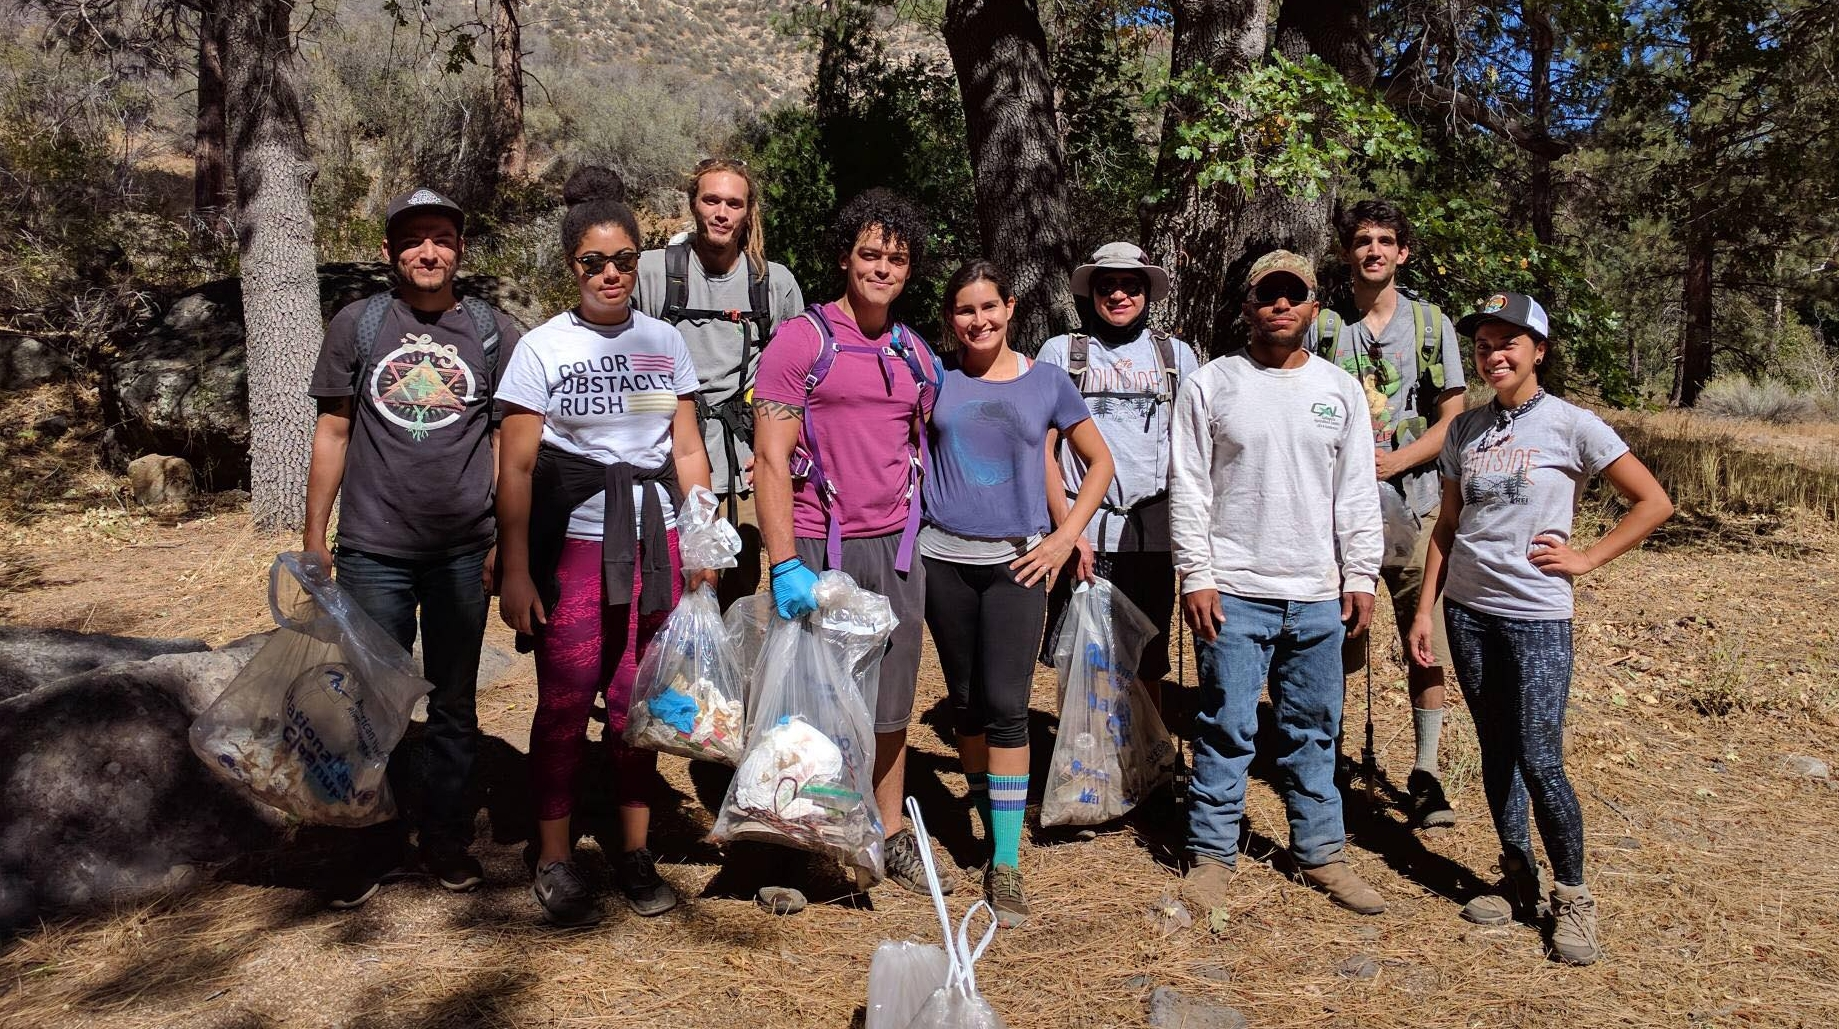 Our volunteers participating in a river clean up at the Forks of the Kern trail in Golden Trout Wilderness.